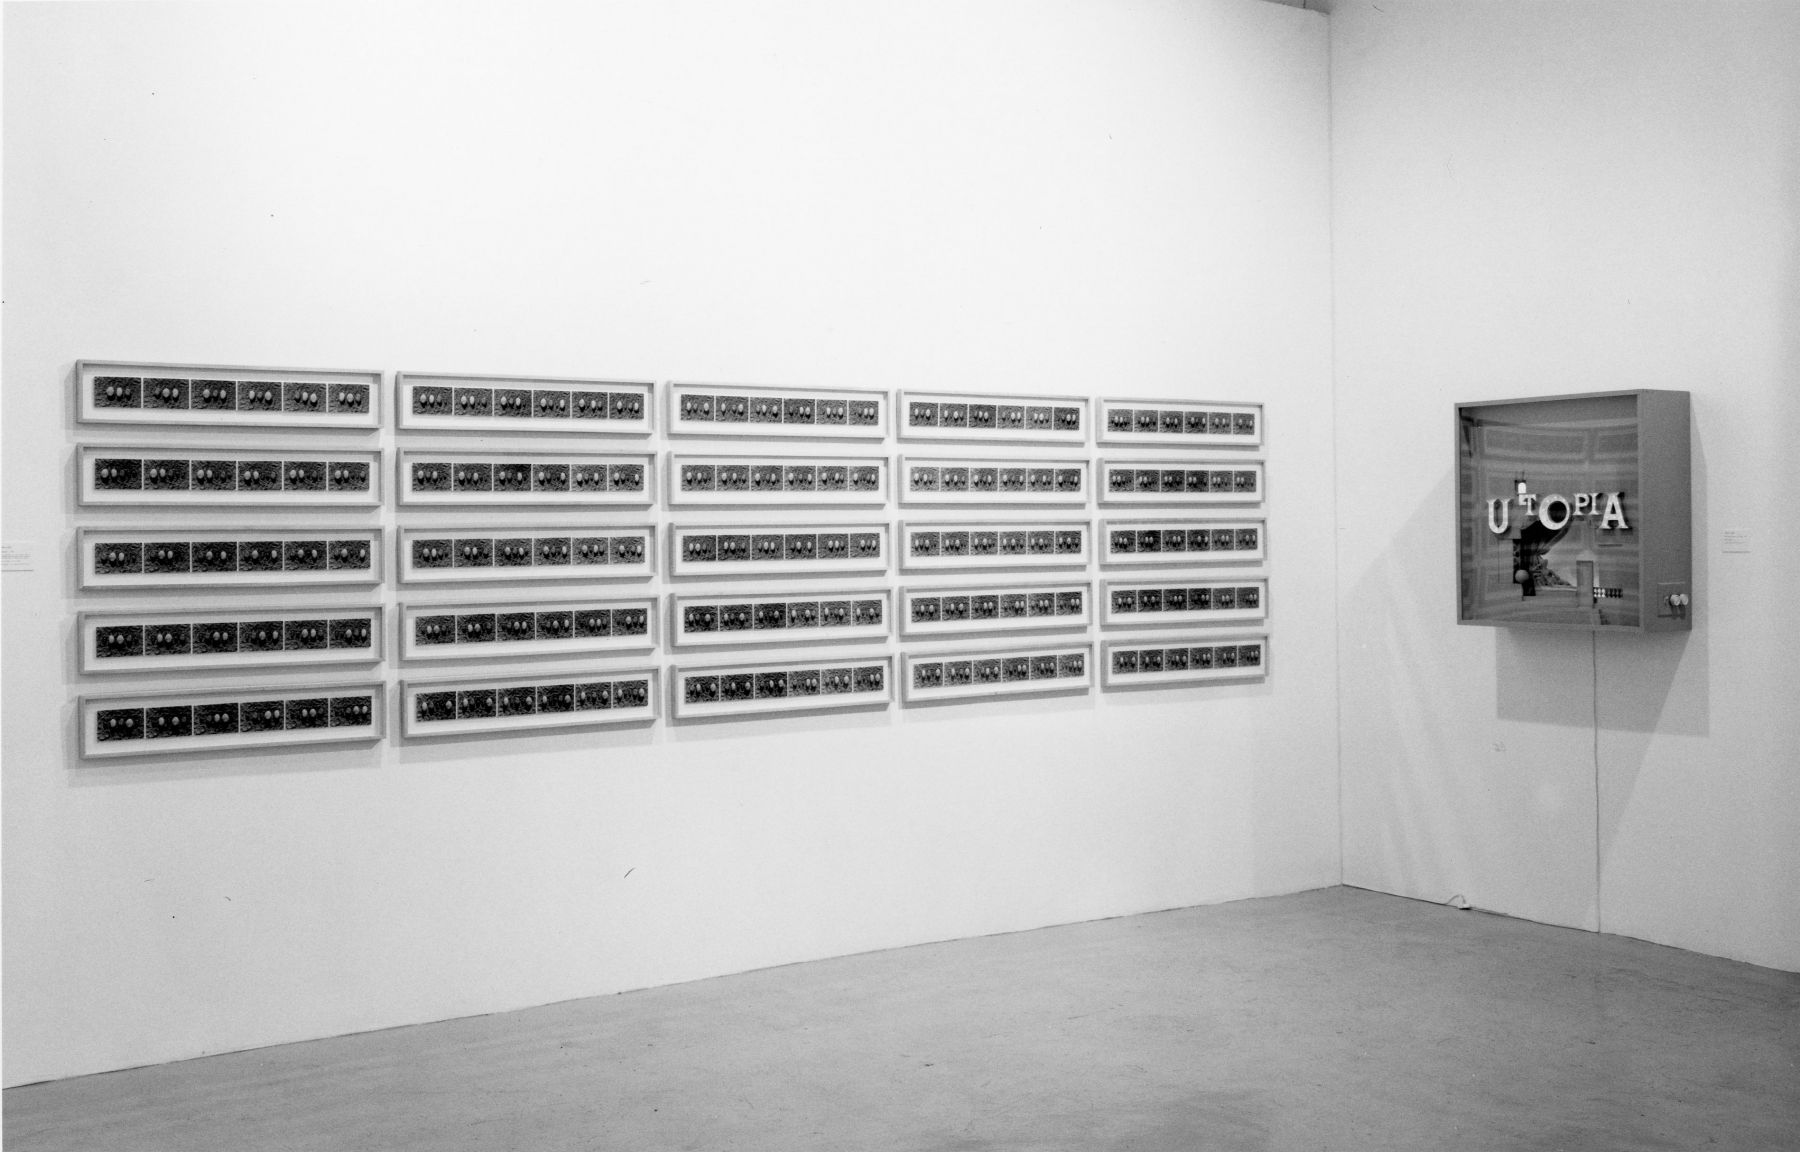 Installation view, 25th Anniversary Exhibition of Leo Castelli, 142 GREENE